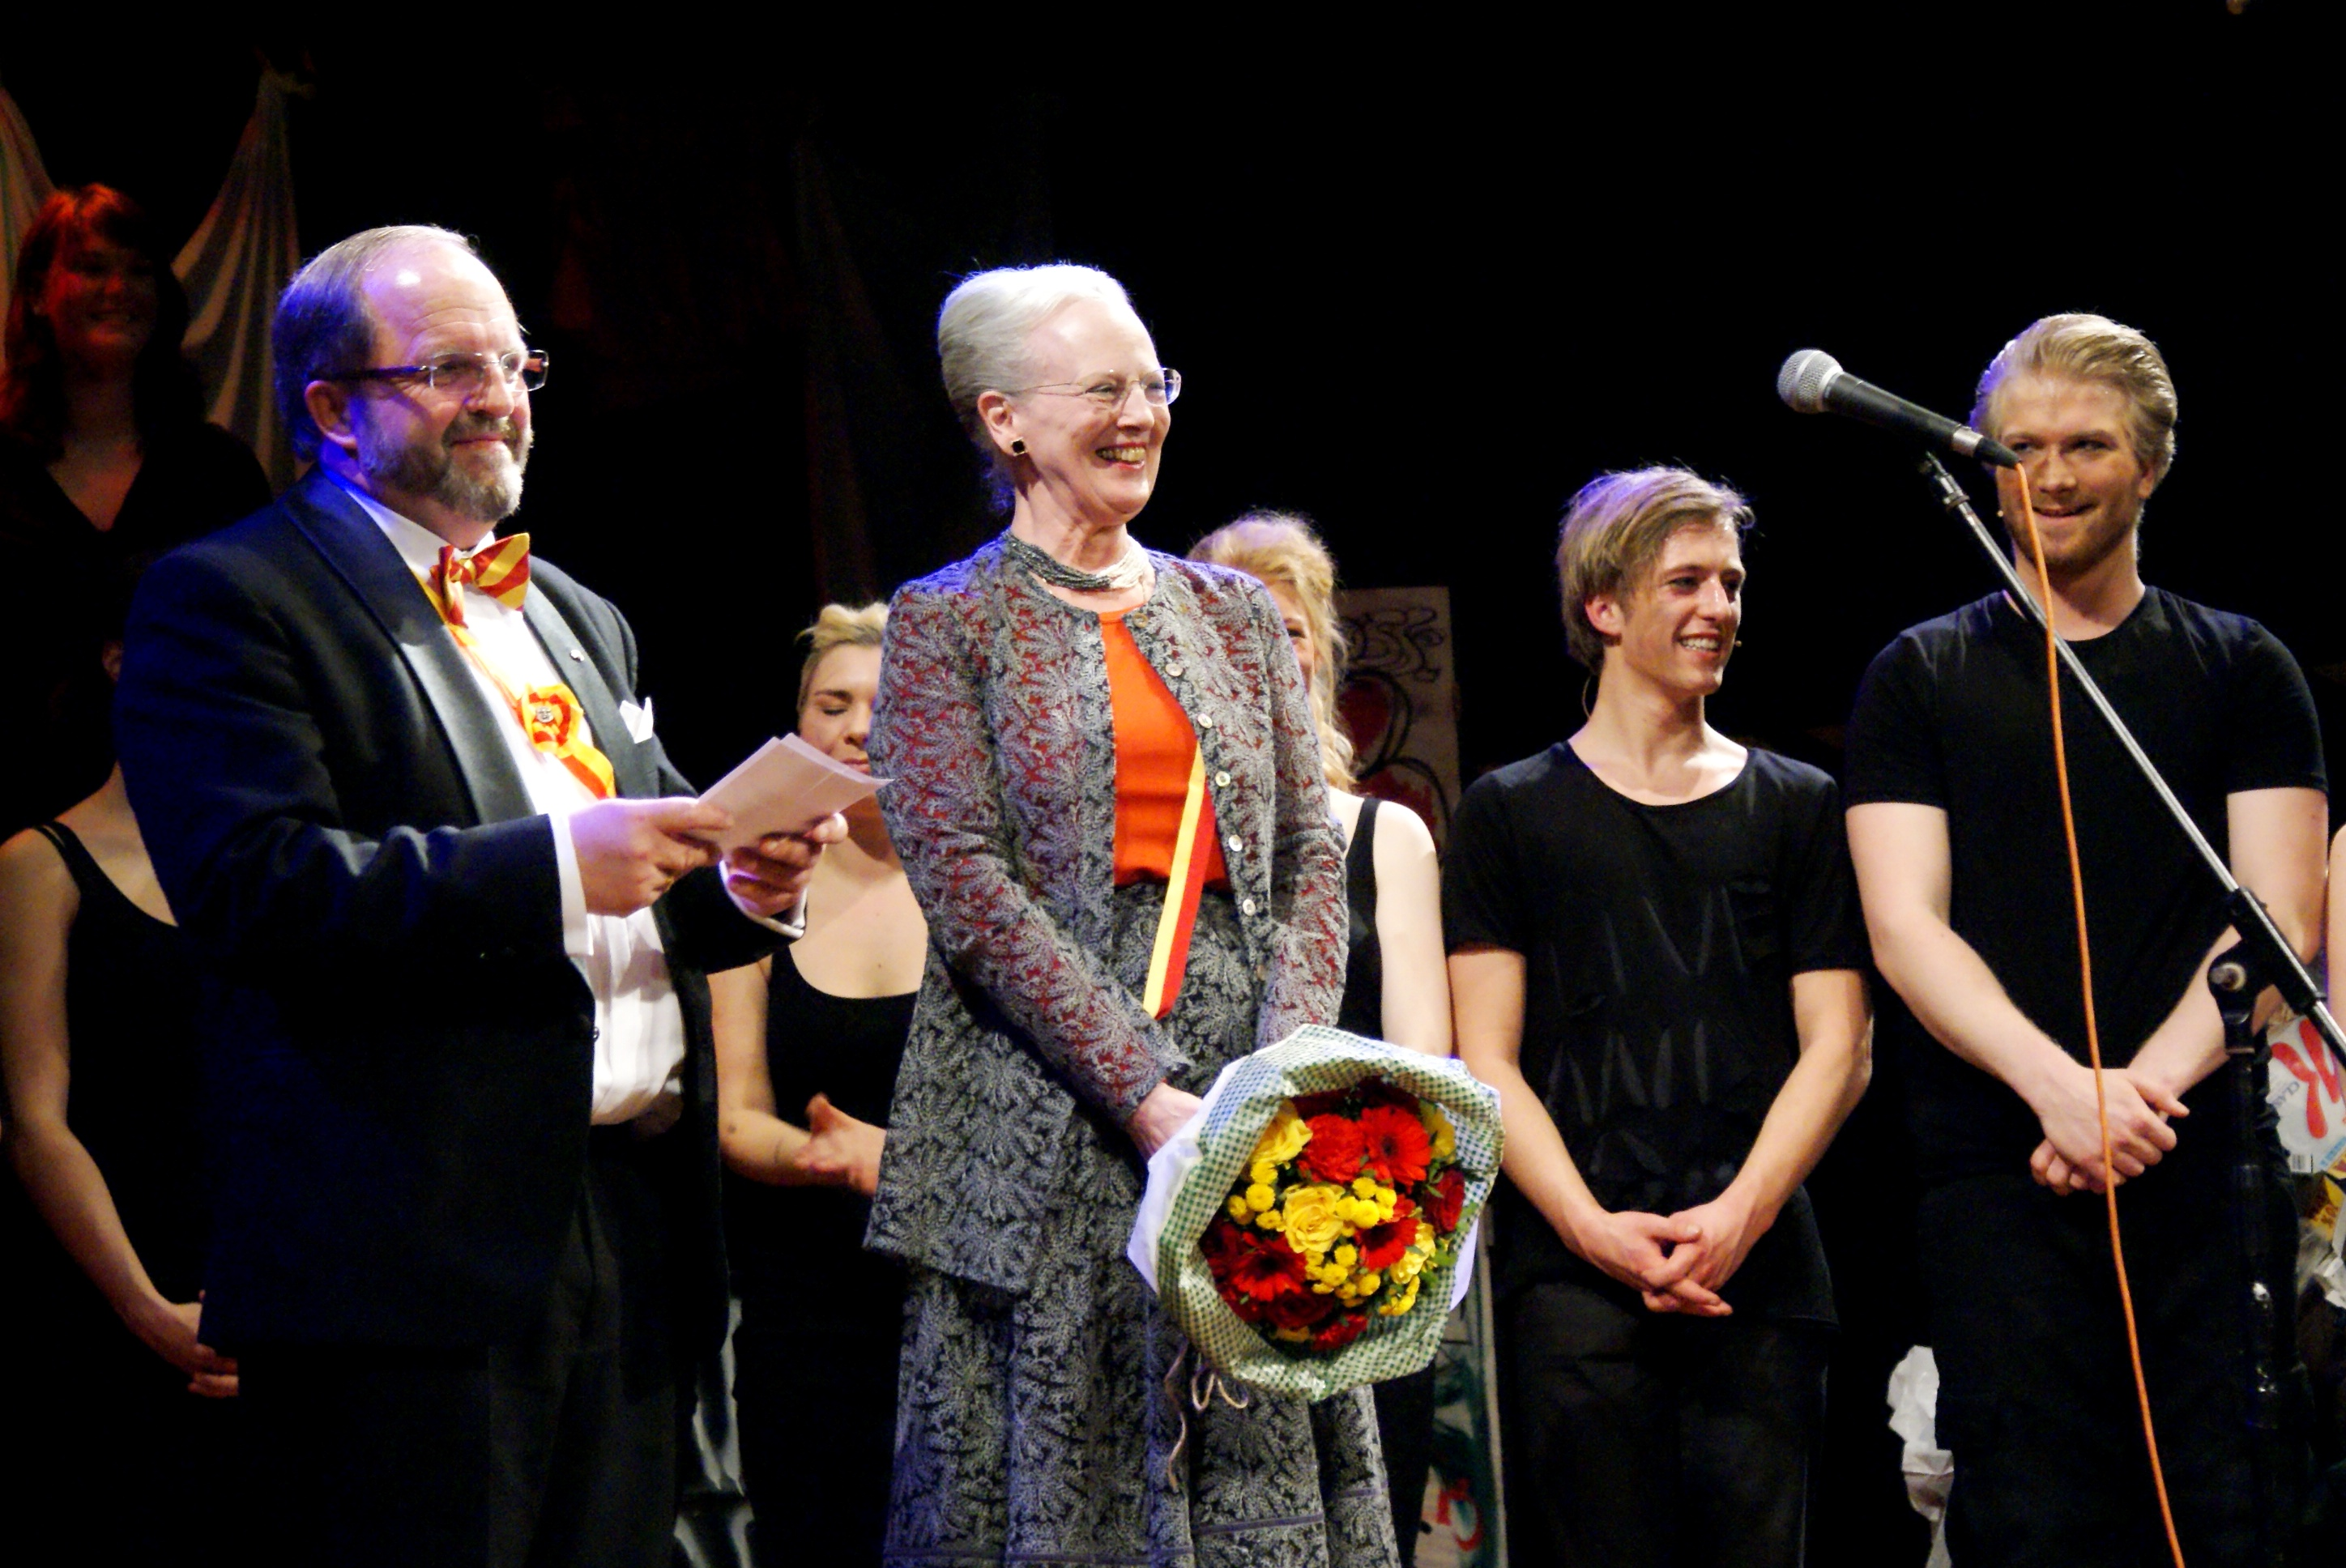 dronning margrethe paa scenen